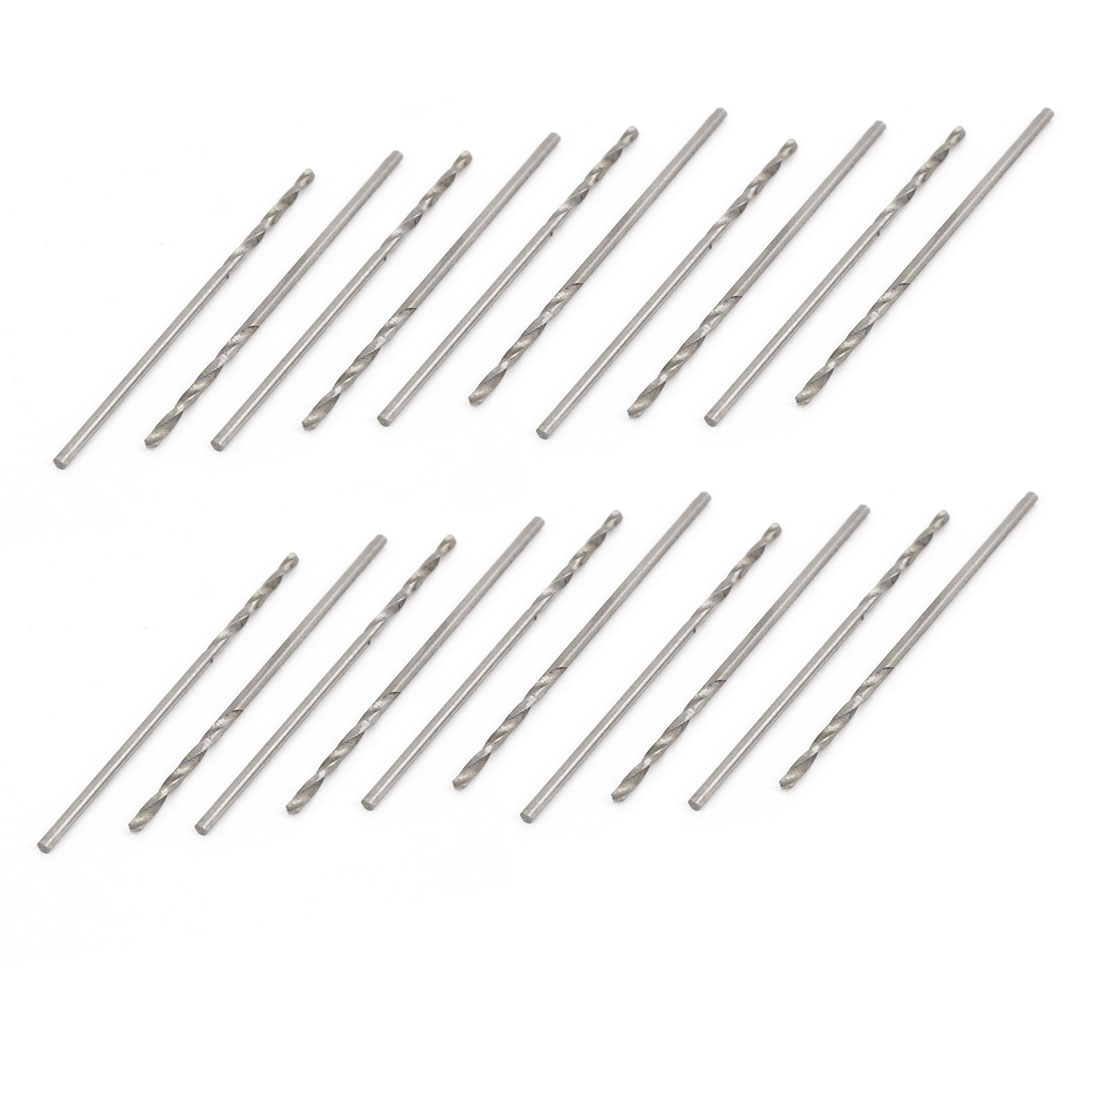 High Speed Steel 1.0mm Dia Split Point 33mm Long Twist Drill Bits 20 Pcs